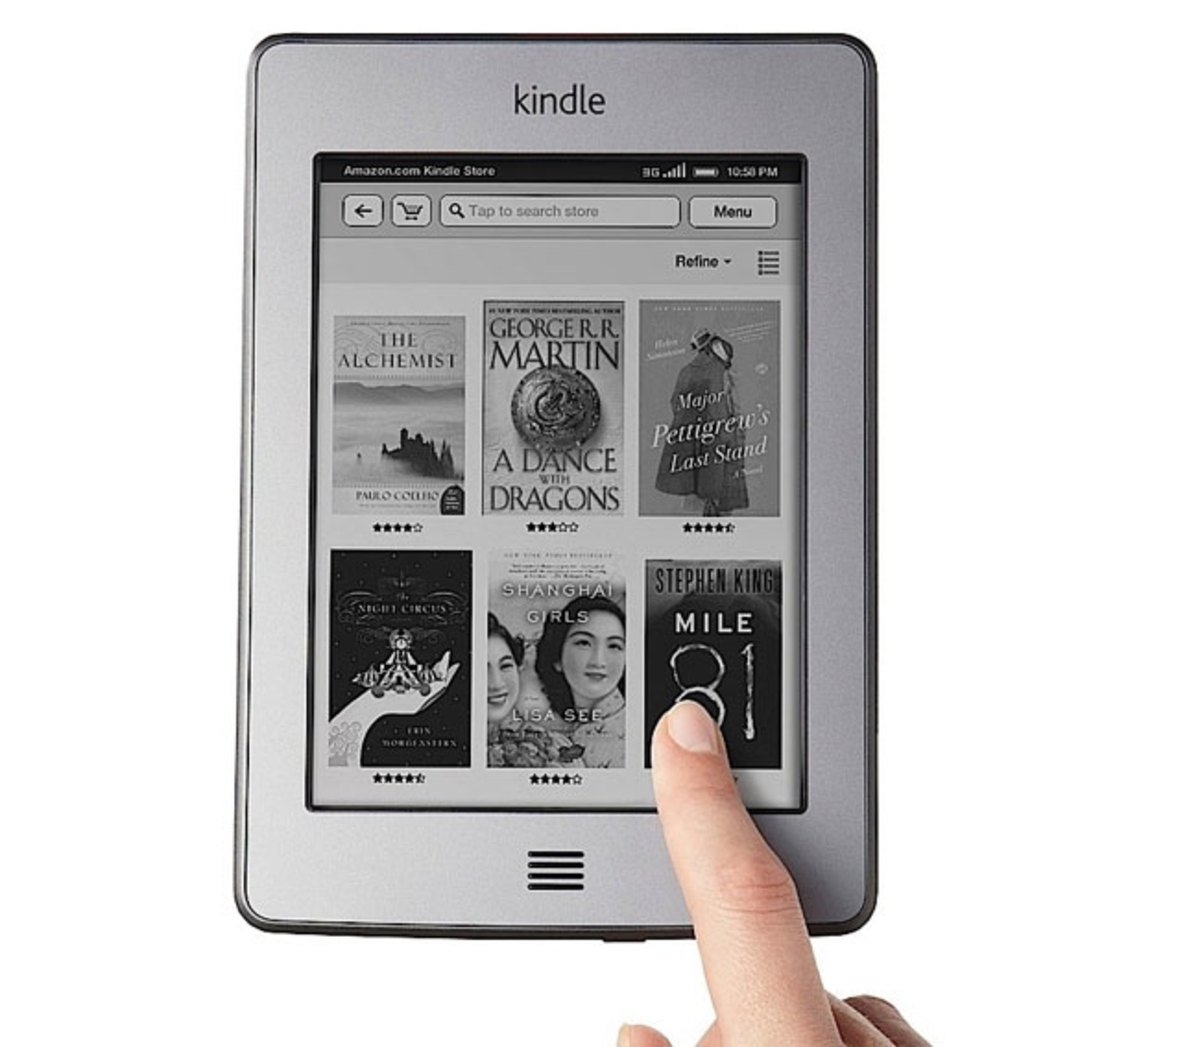 Troubleshooting Kindle Touch Problems